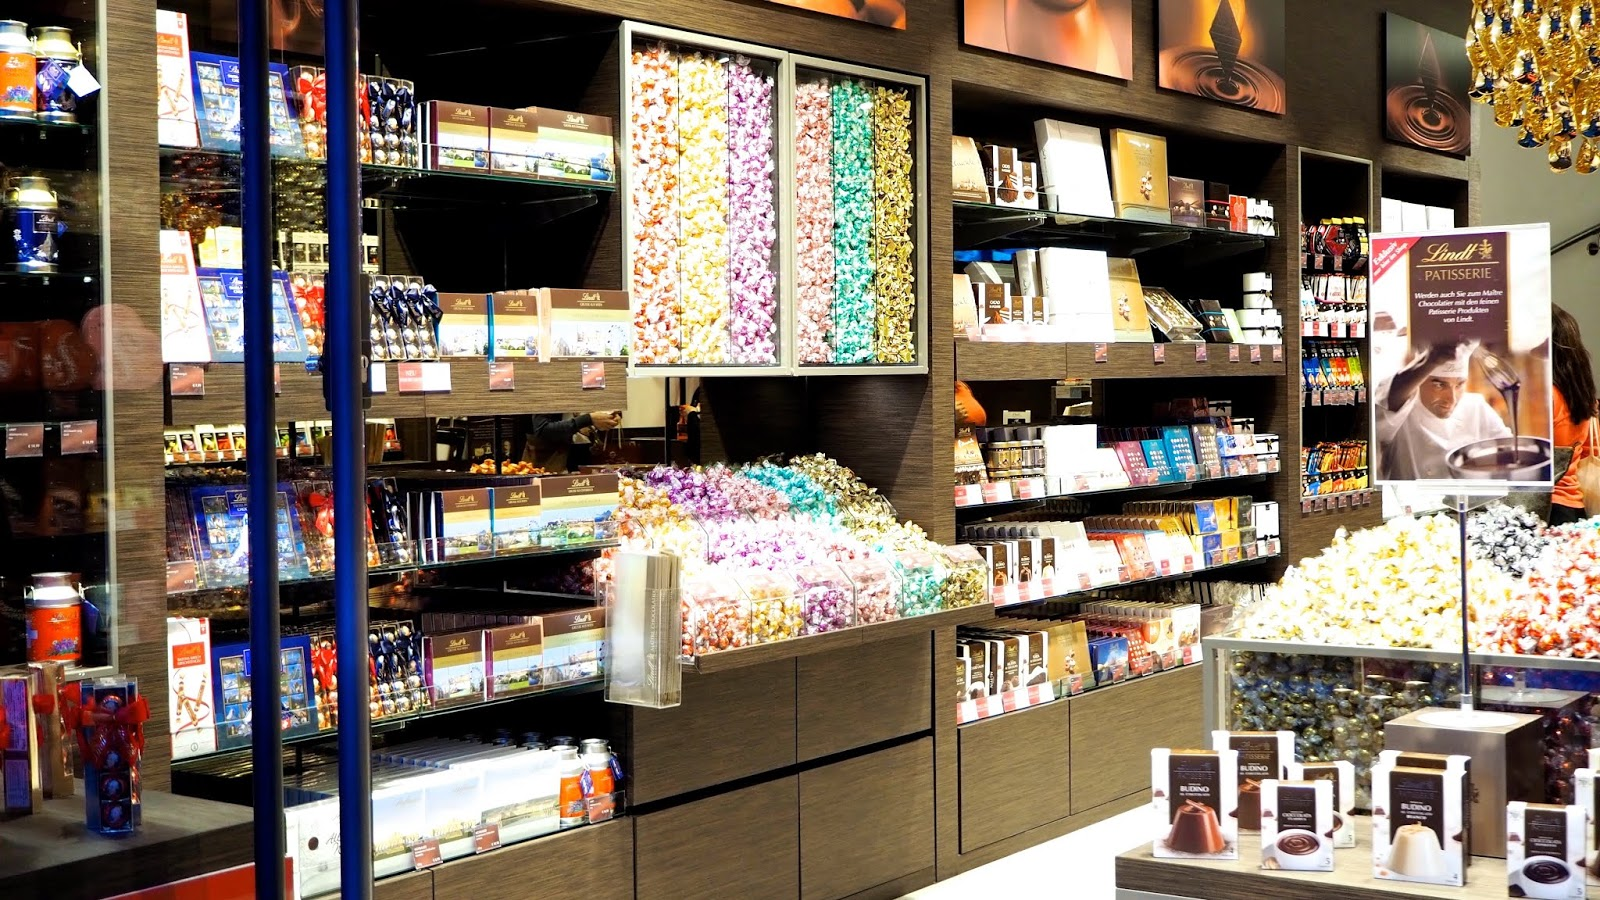 Lindt Patisserie and Candy Shop